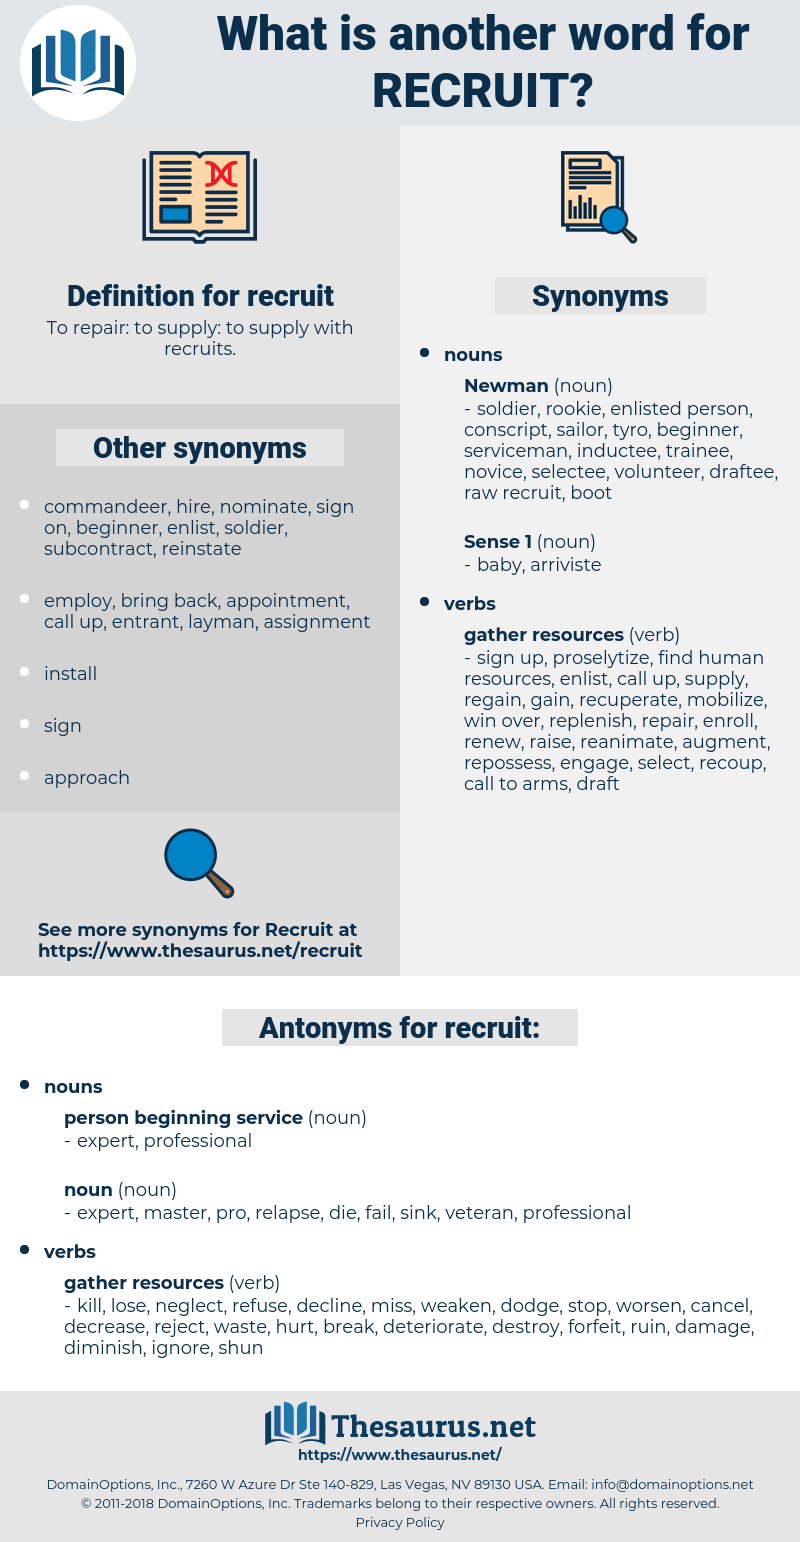 recruit, synonym recruit, another word for recruit, words like recruit, thesaurus recruit